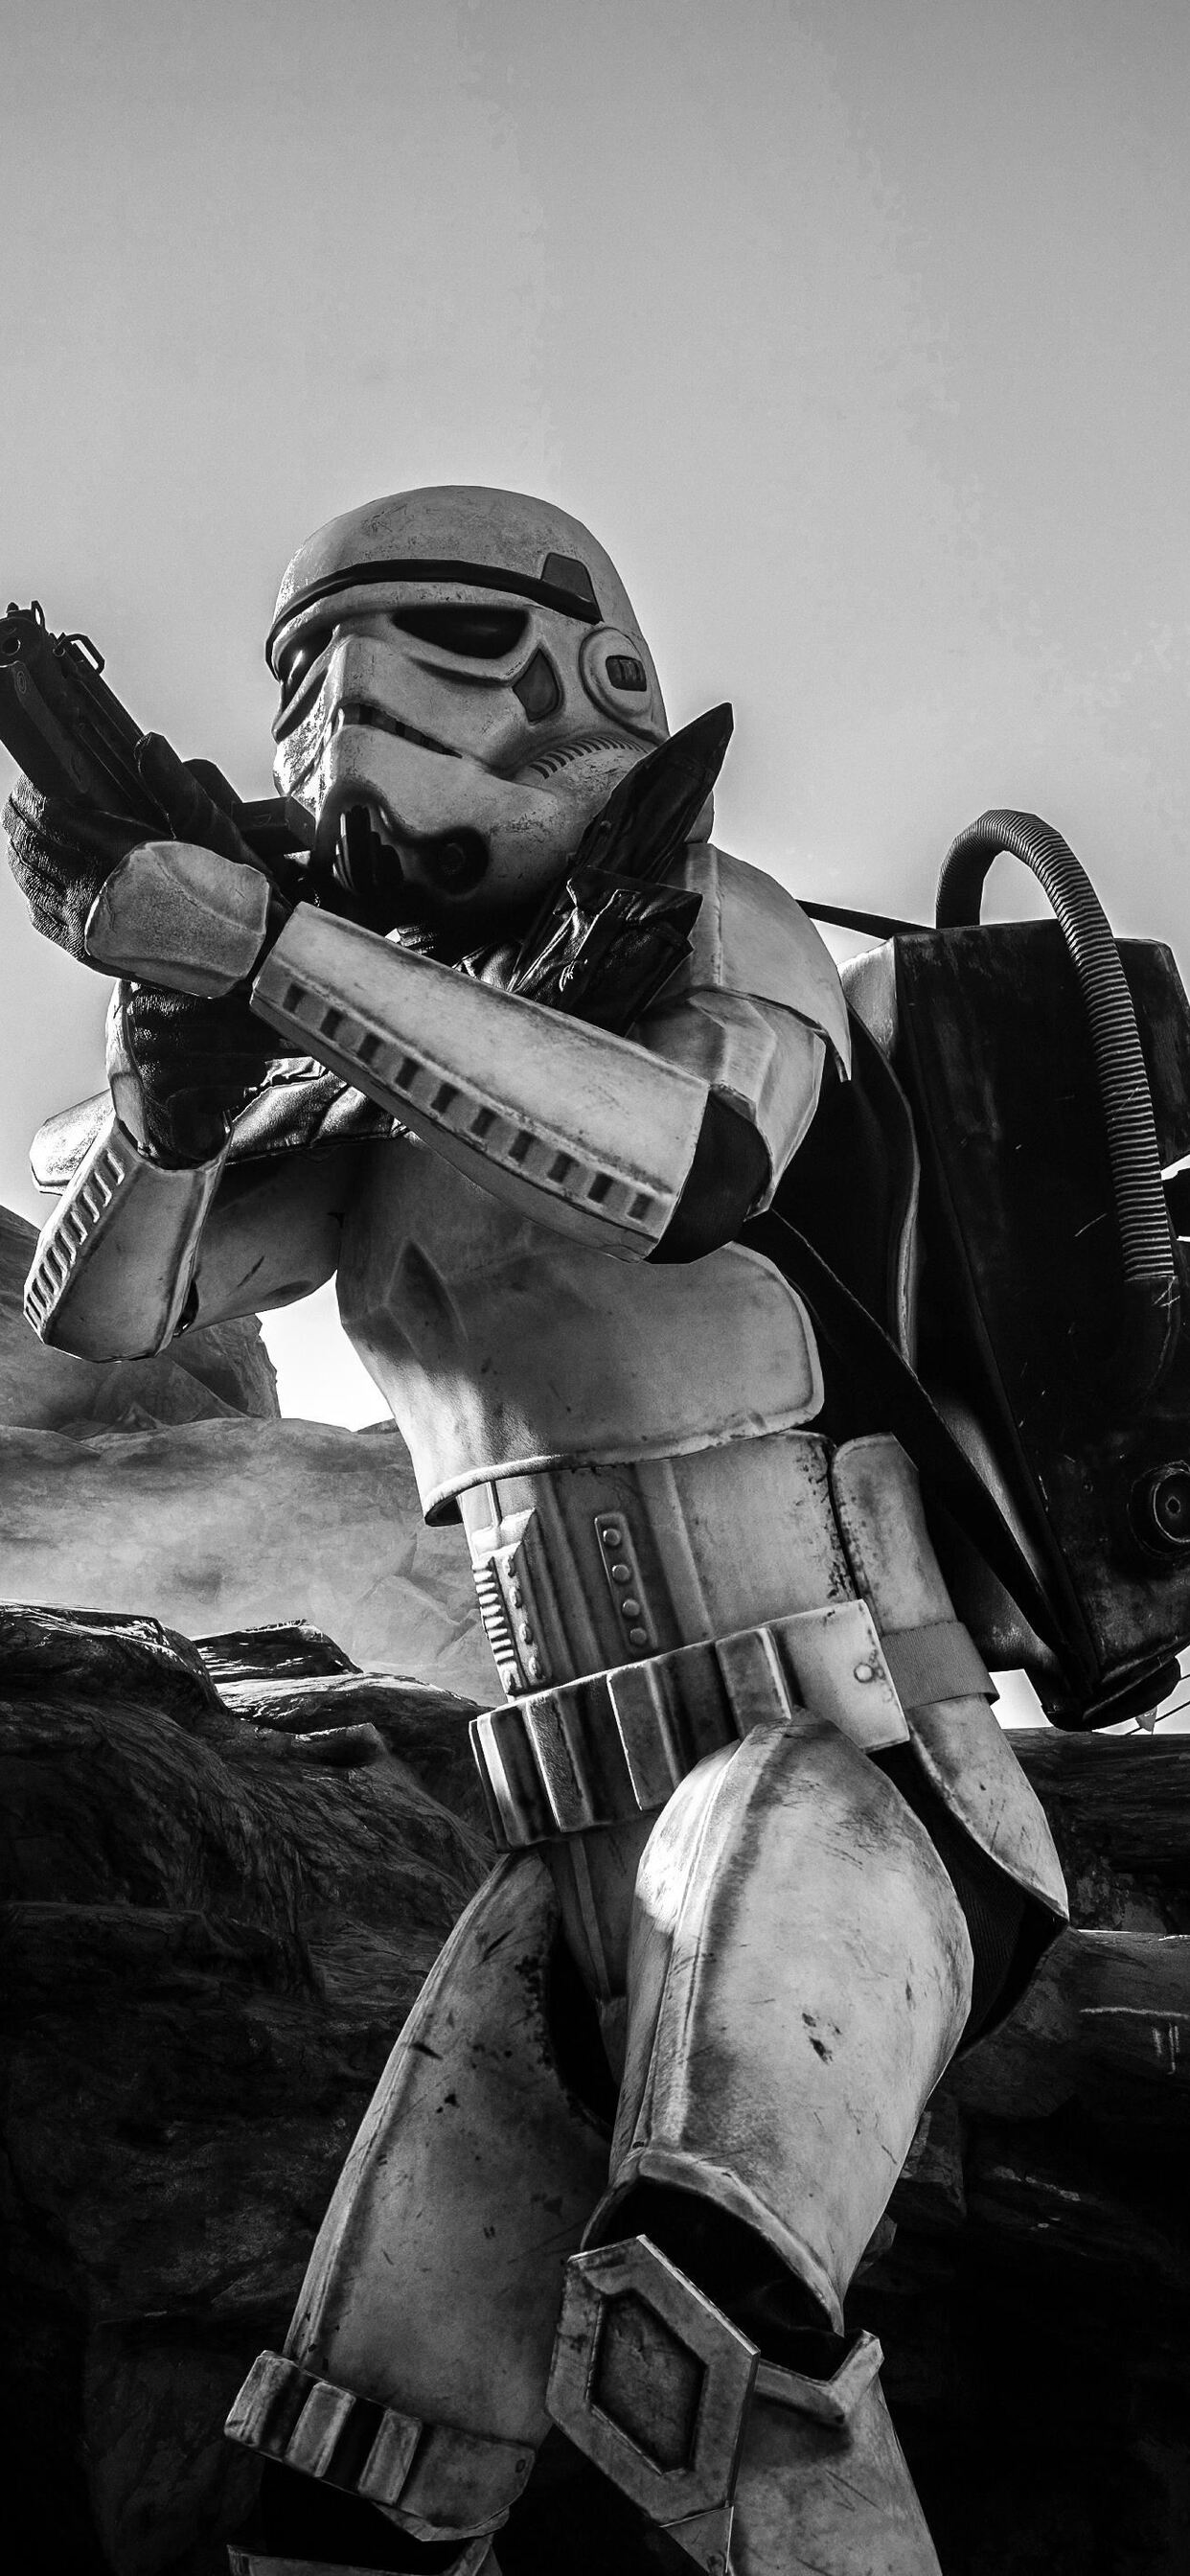 1242x2688 Stormtrooper Iphone Xs Max Hd 4k Wallpapers Images Backgrounds Photos And Pictures